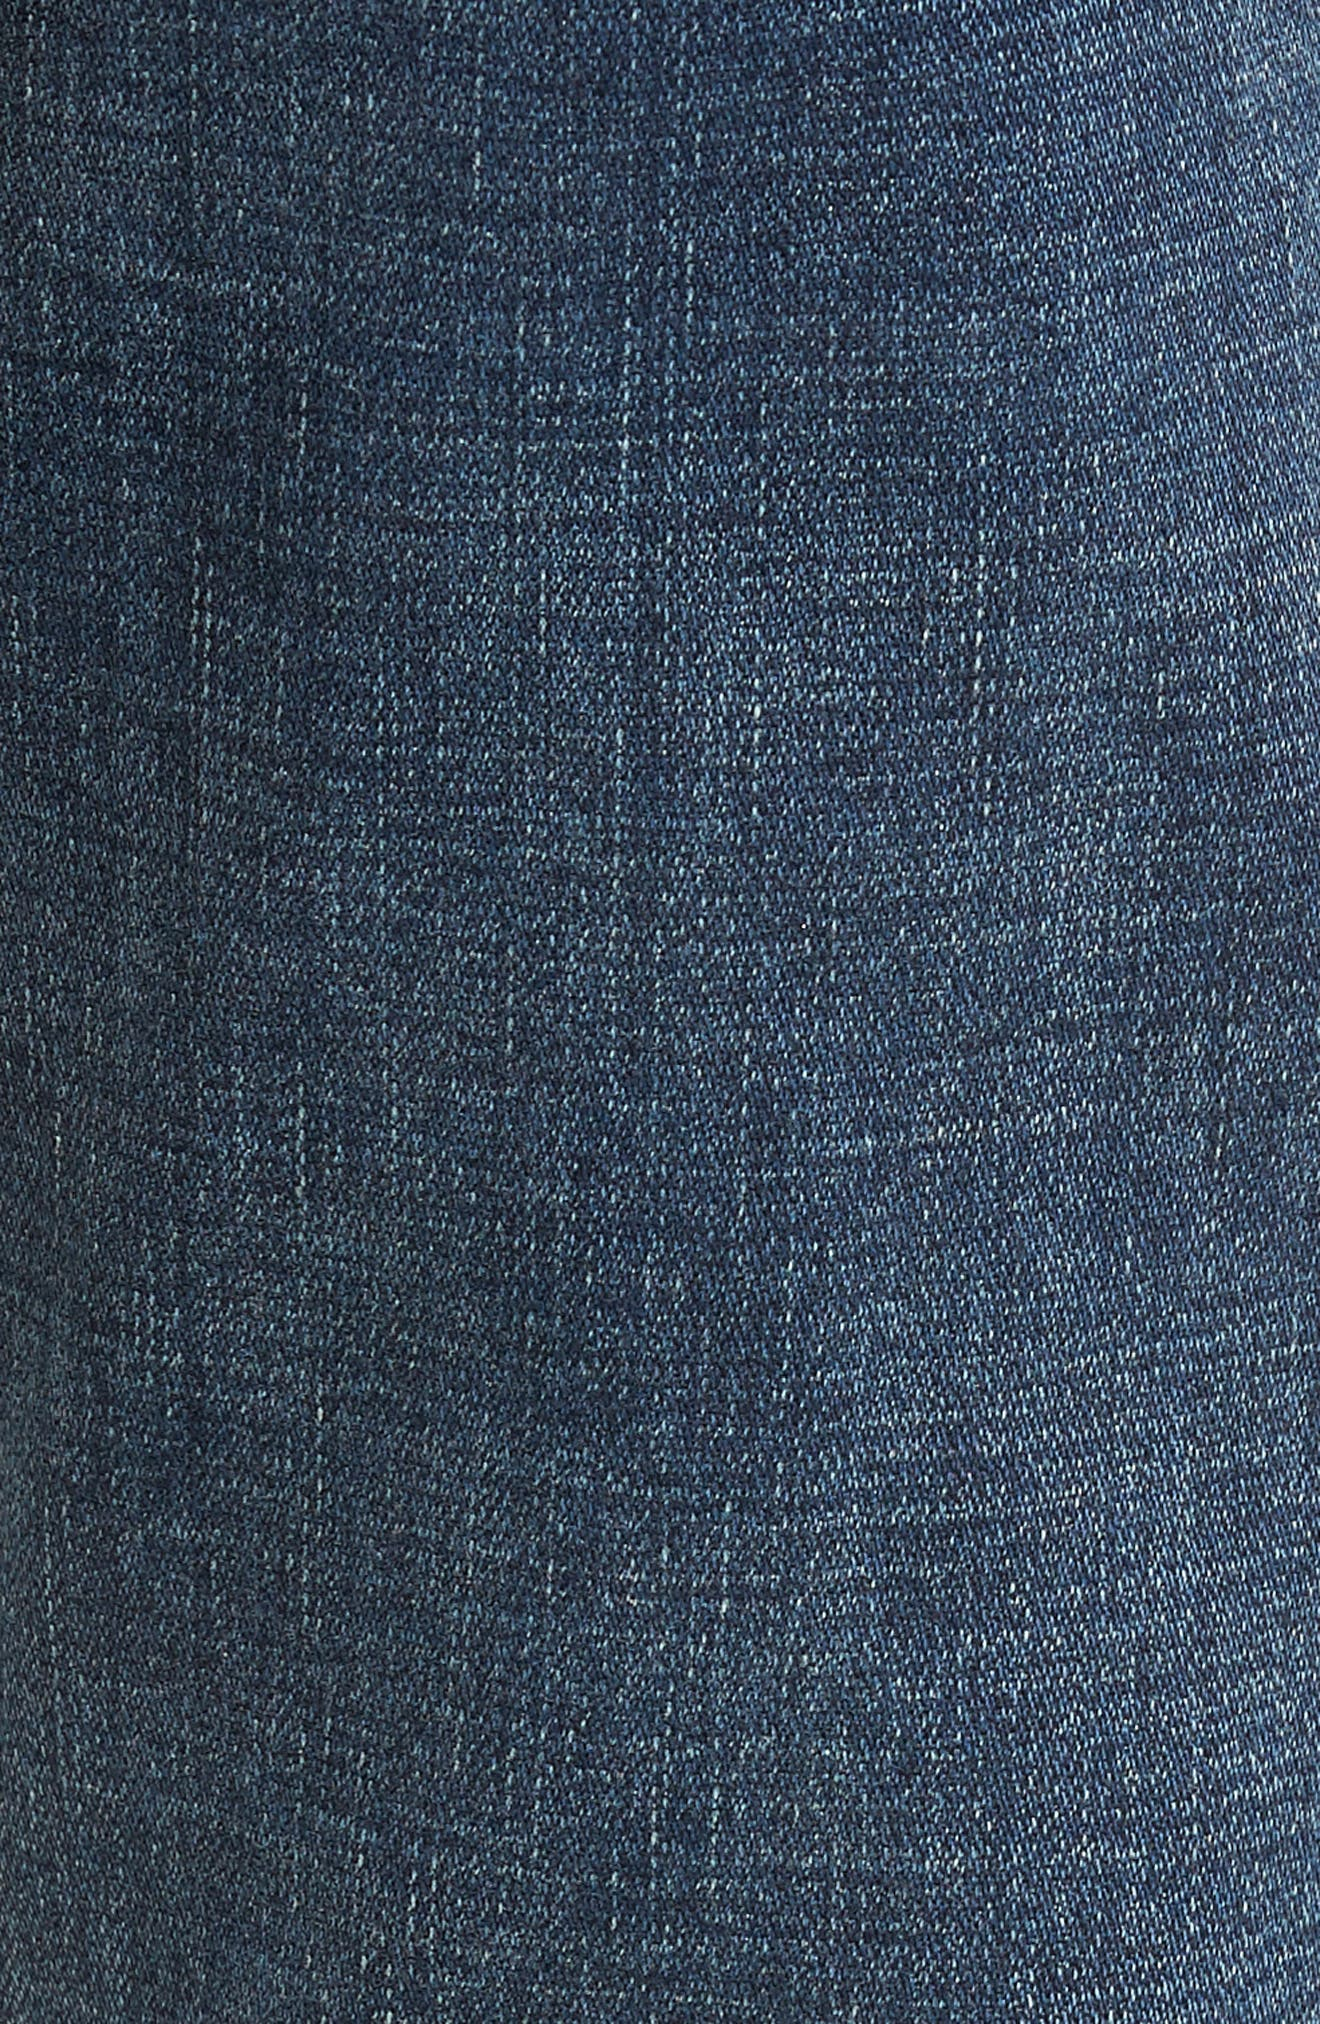 Greensboro Straight Leg Jeans,                             Alternate thumbnail 5, color,                             472